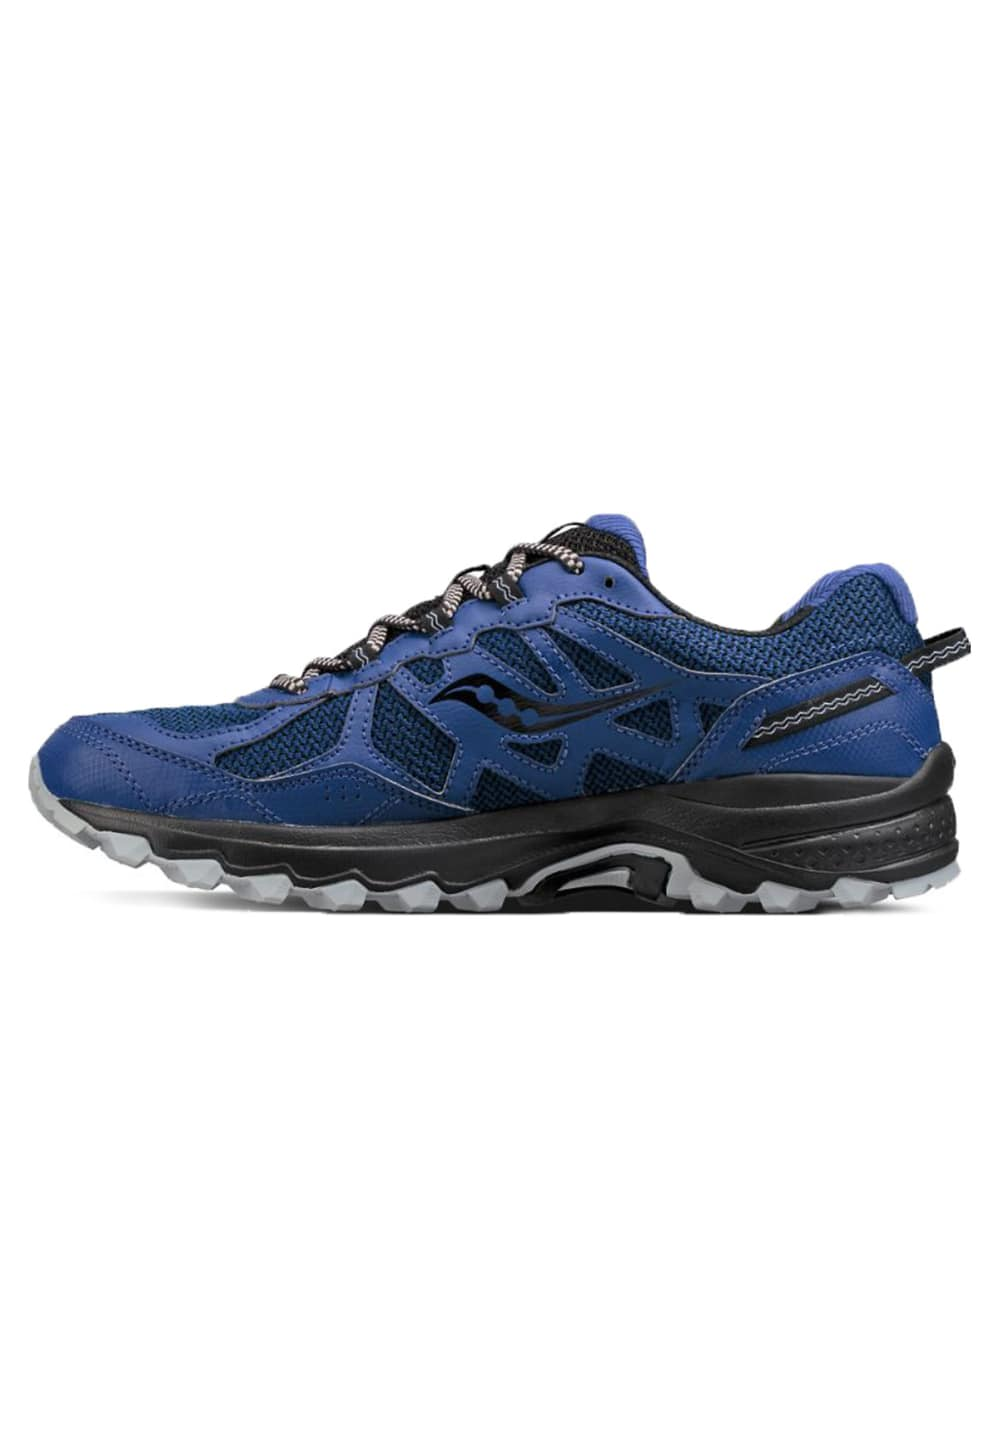 quality design 829ca 024bf Saucony Excursion Tr11 GTX - Running shoes for Men - Blue